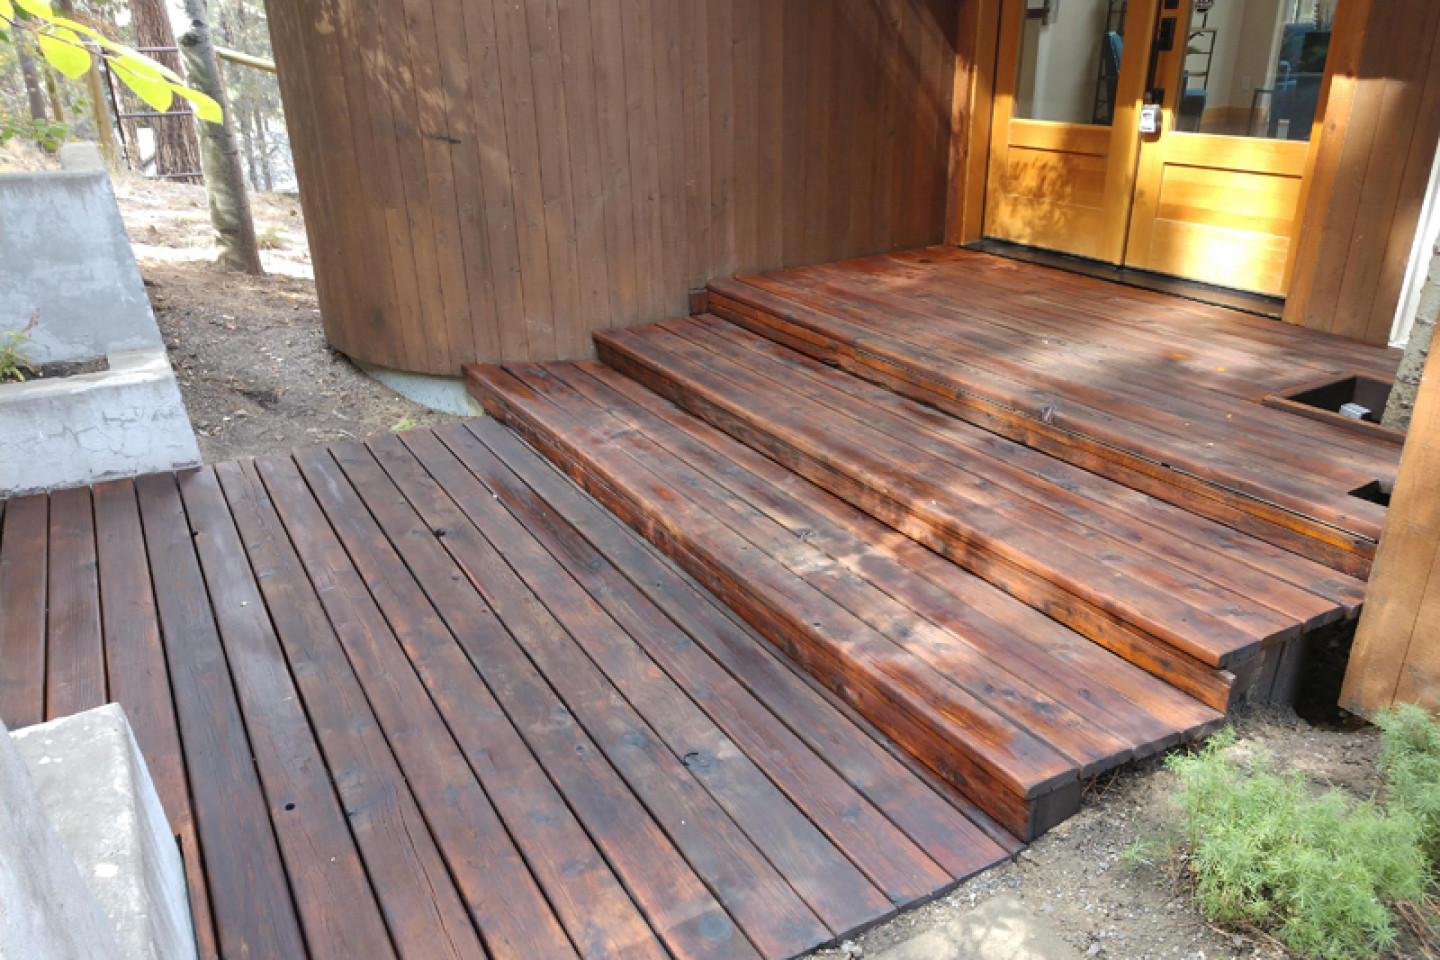 Interior Wood Refinishing Services in Bend, OR and Surrounding Areas